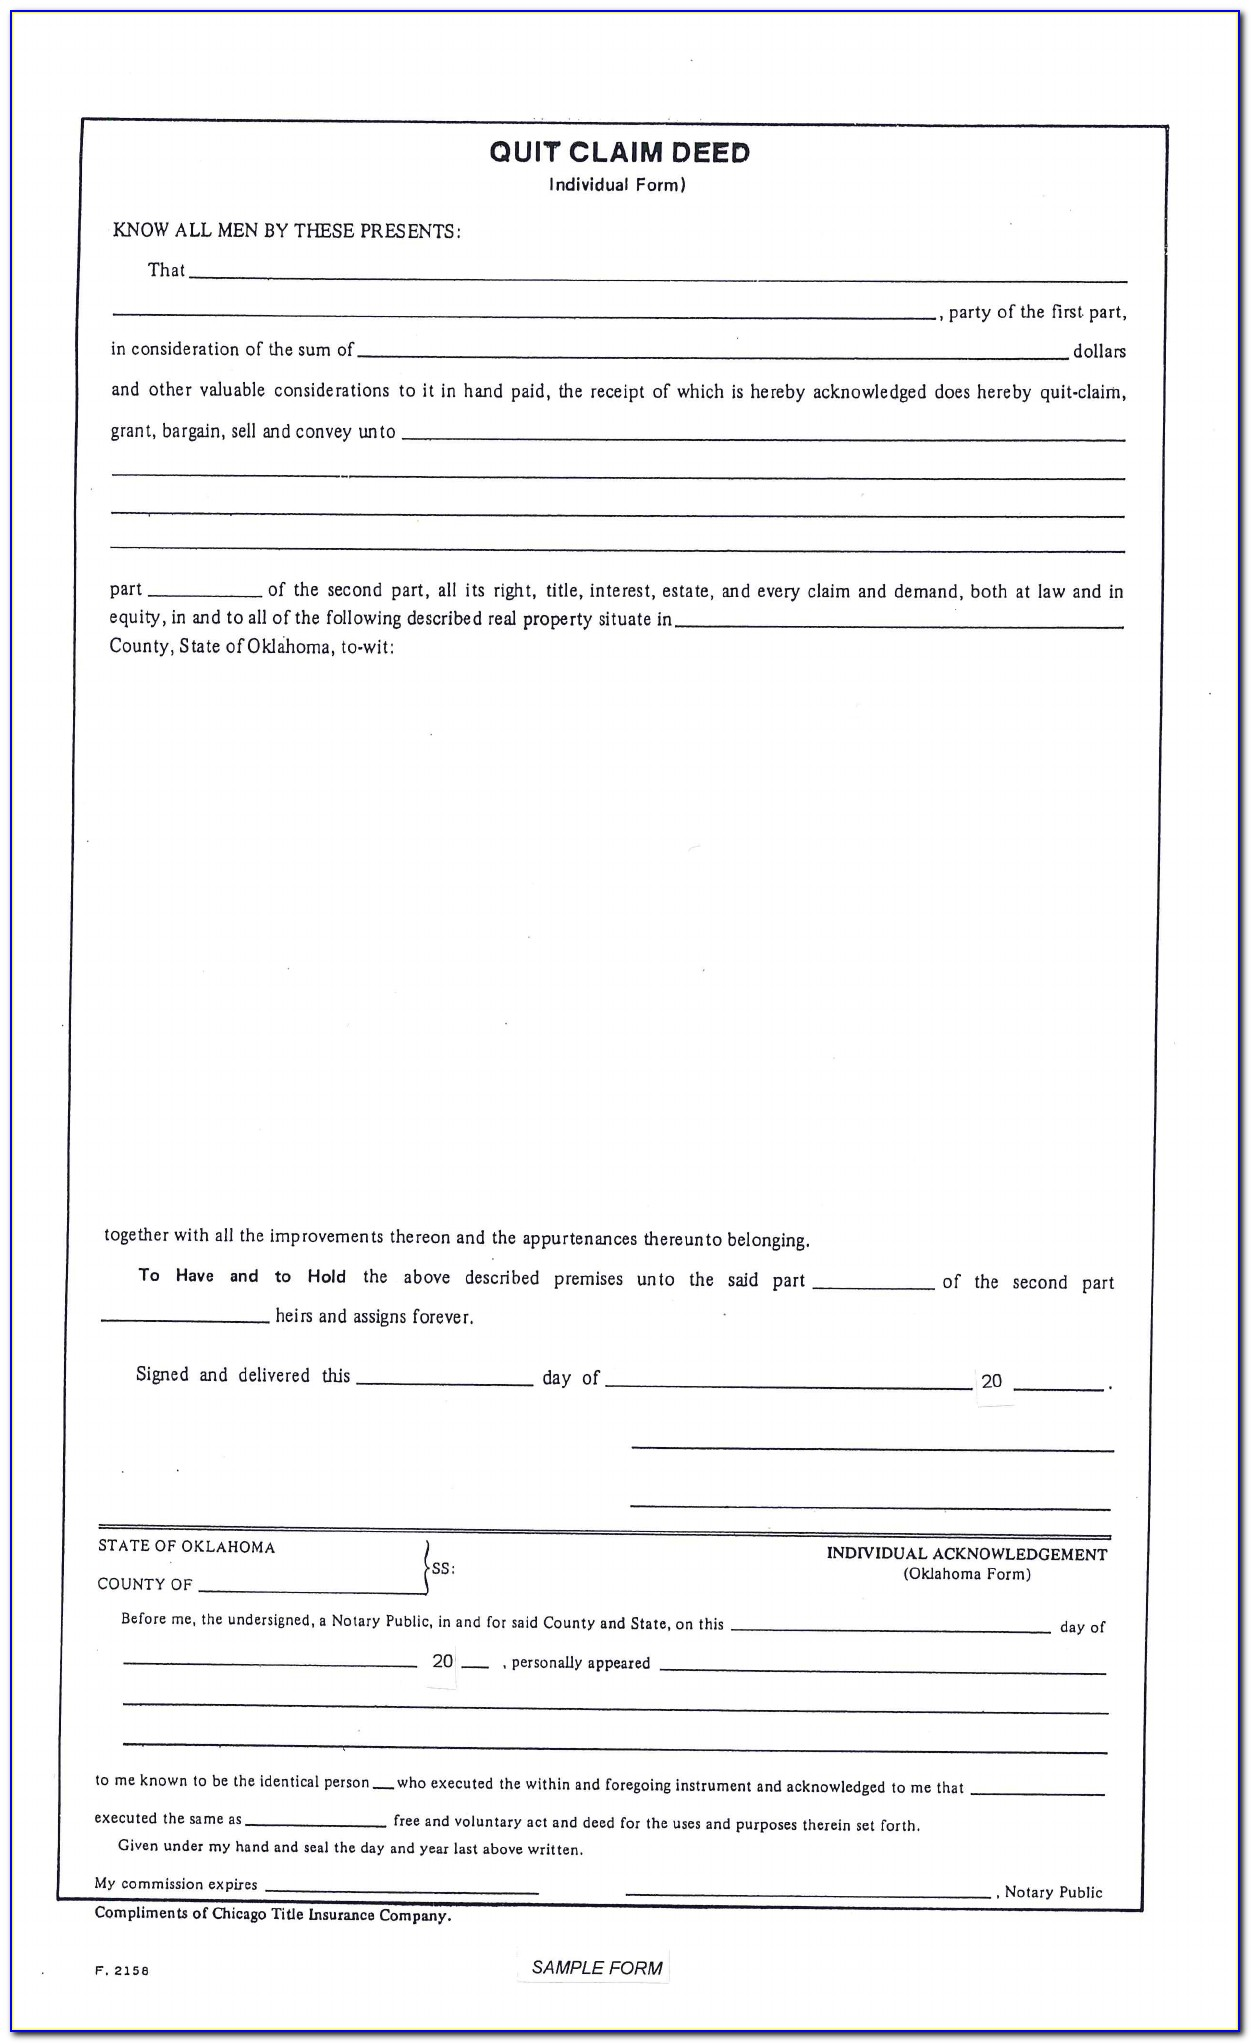 Quit Claim Deed Form Oklahoma County